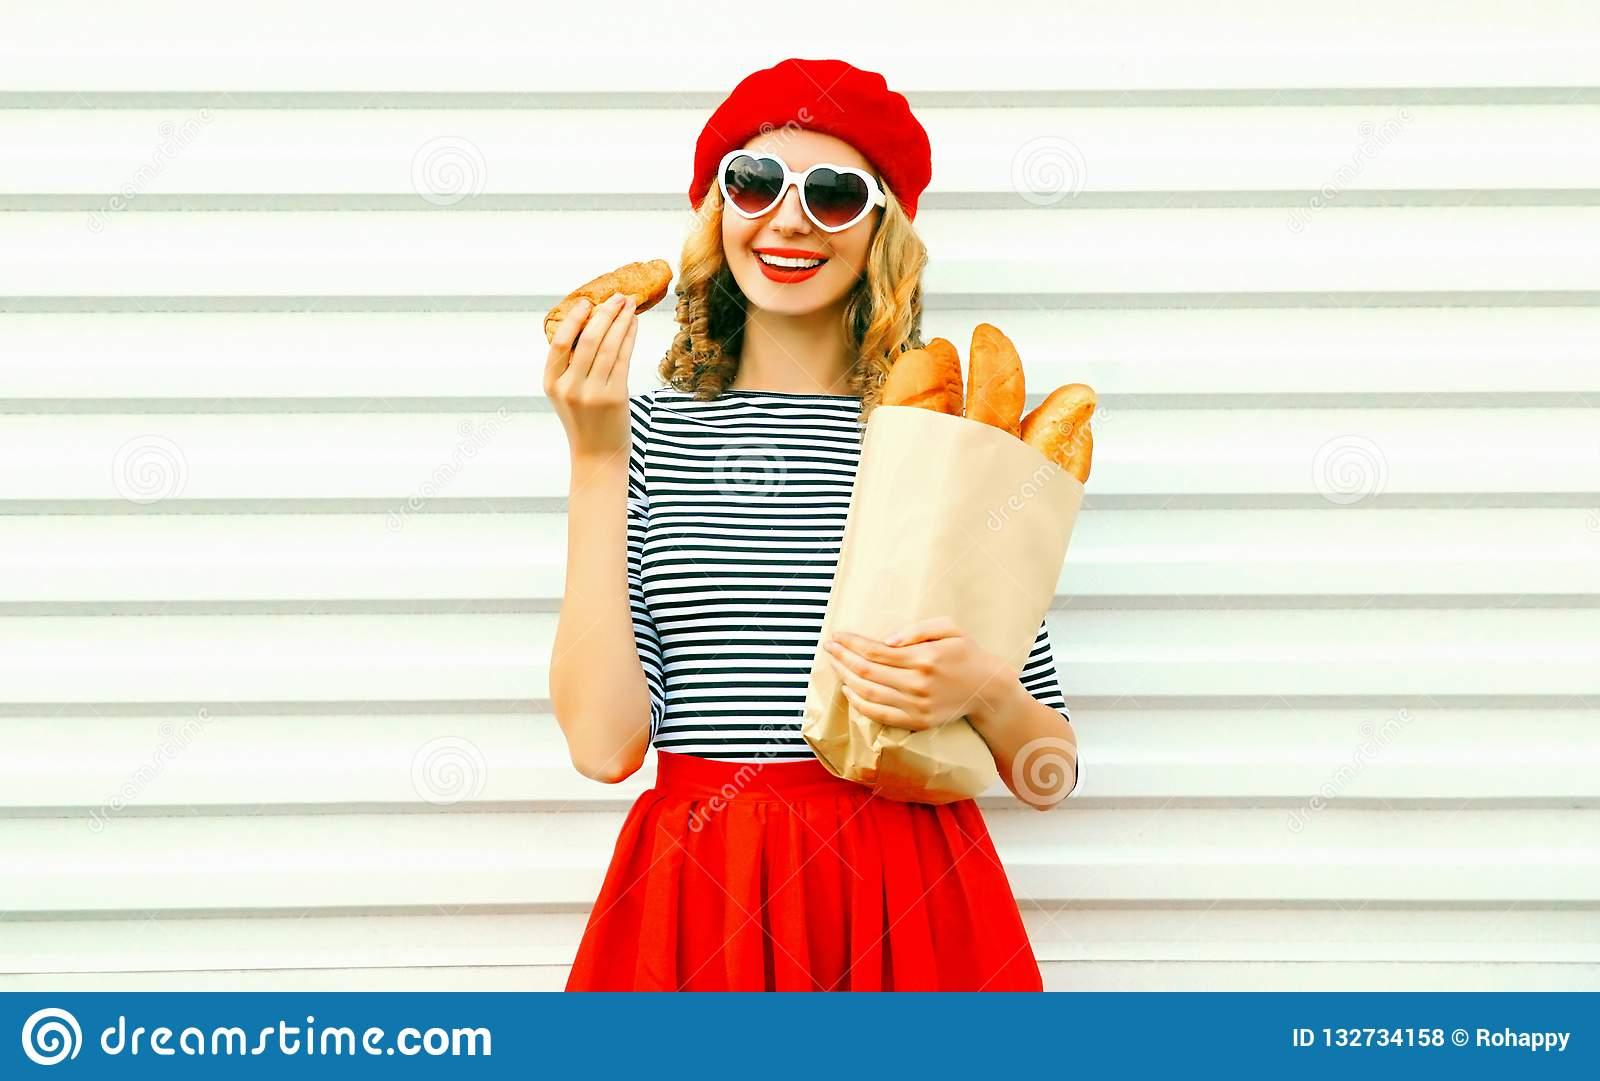 e62e15686 Portrait pretty smiling young woman wearing red beret holding croissant,  paper bag with long white bread baguette on white wall background